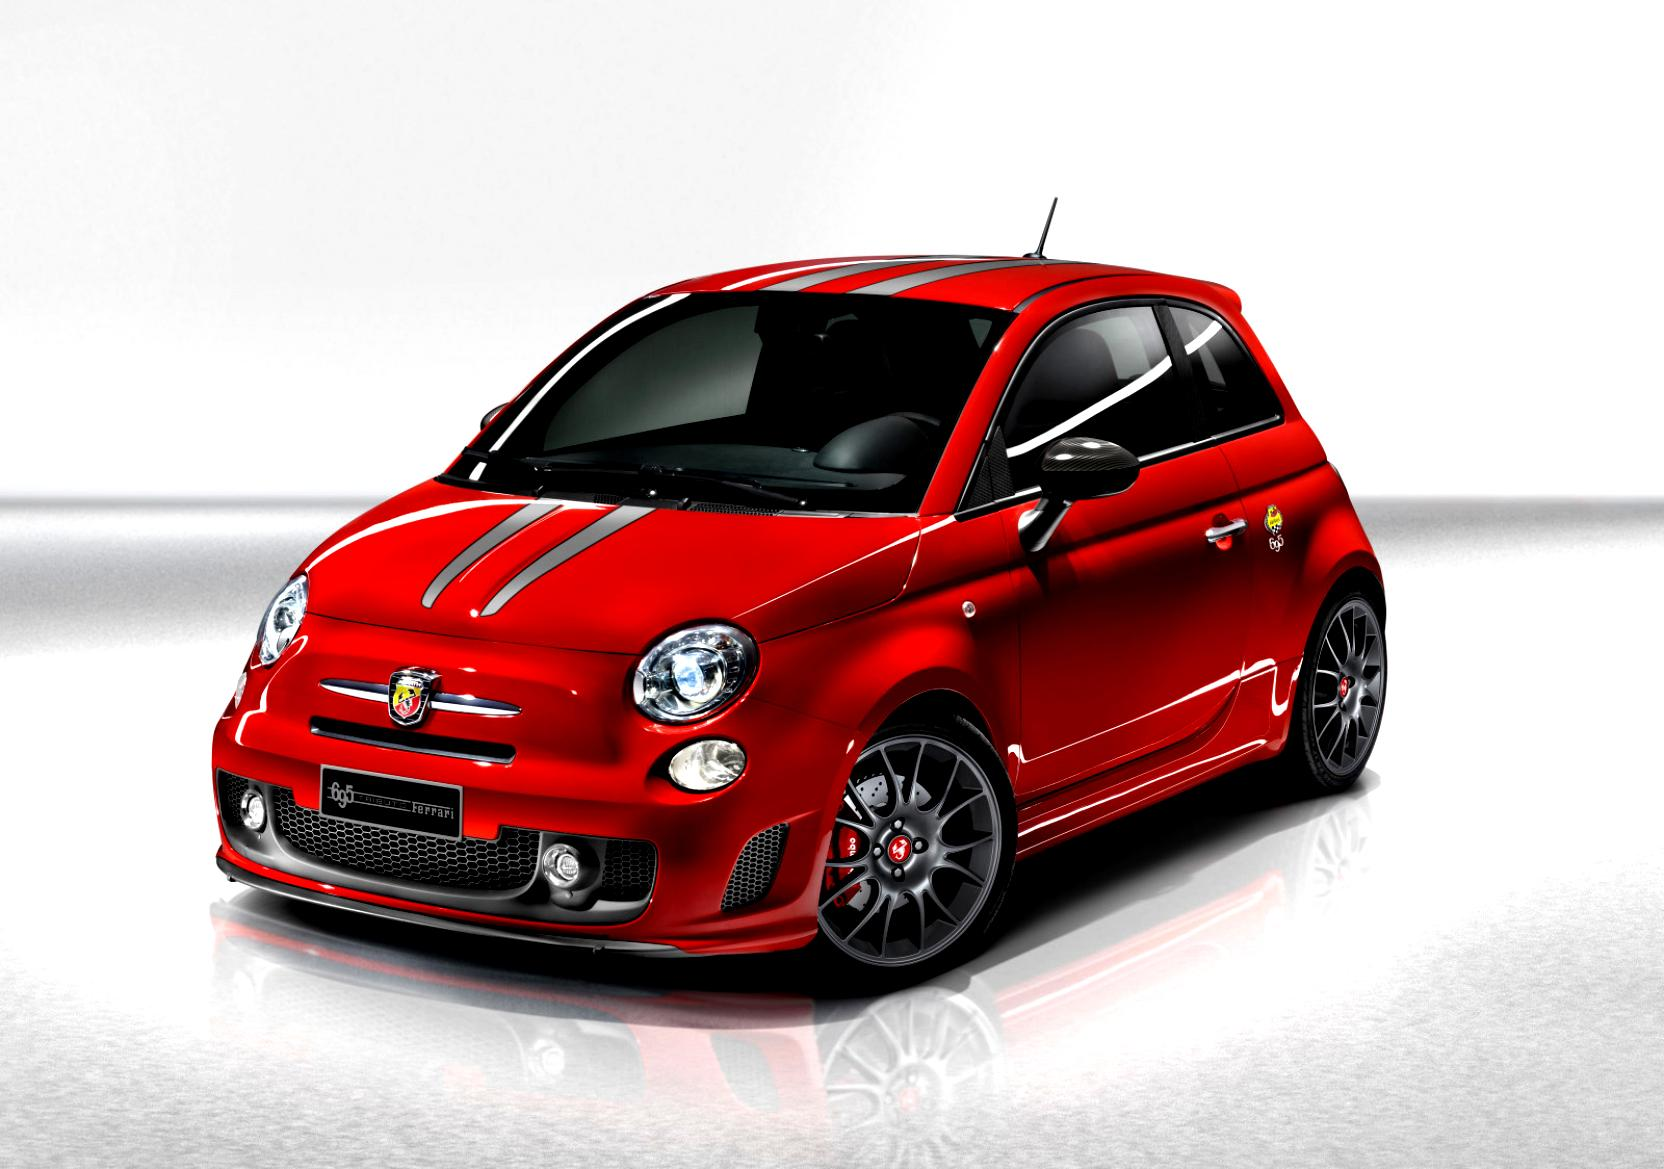 fiat 500 abarth tributo ferrari related keywords fiat 500 abarth tributo ferrari long tail. Black Bedroom Furniture Sets. Home Design Ideas